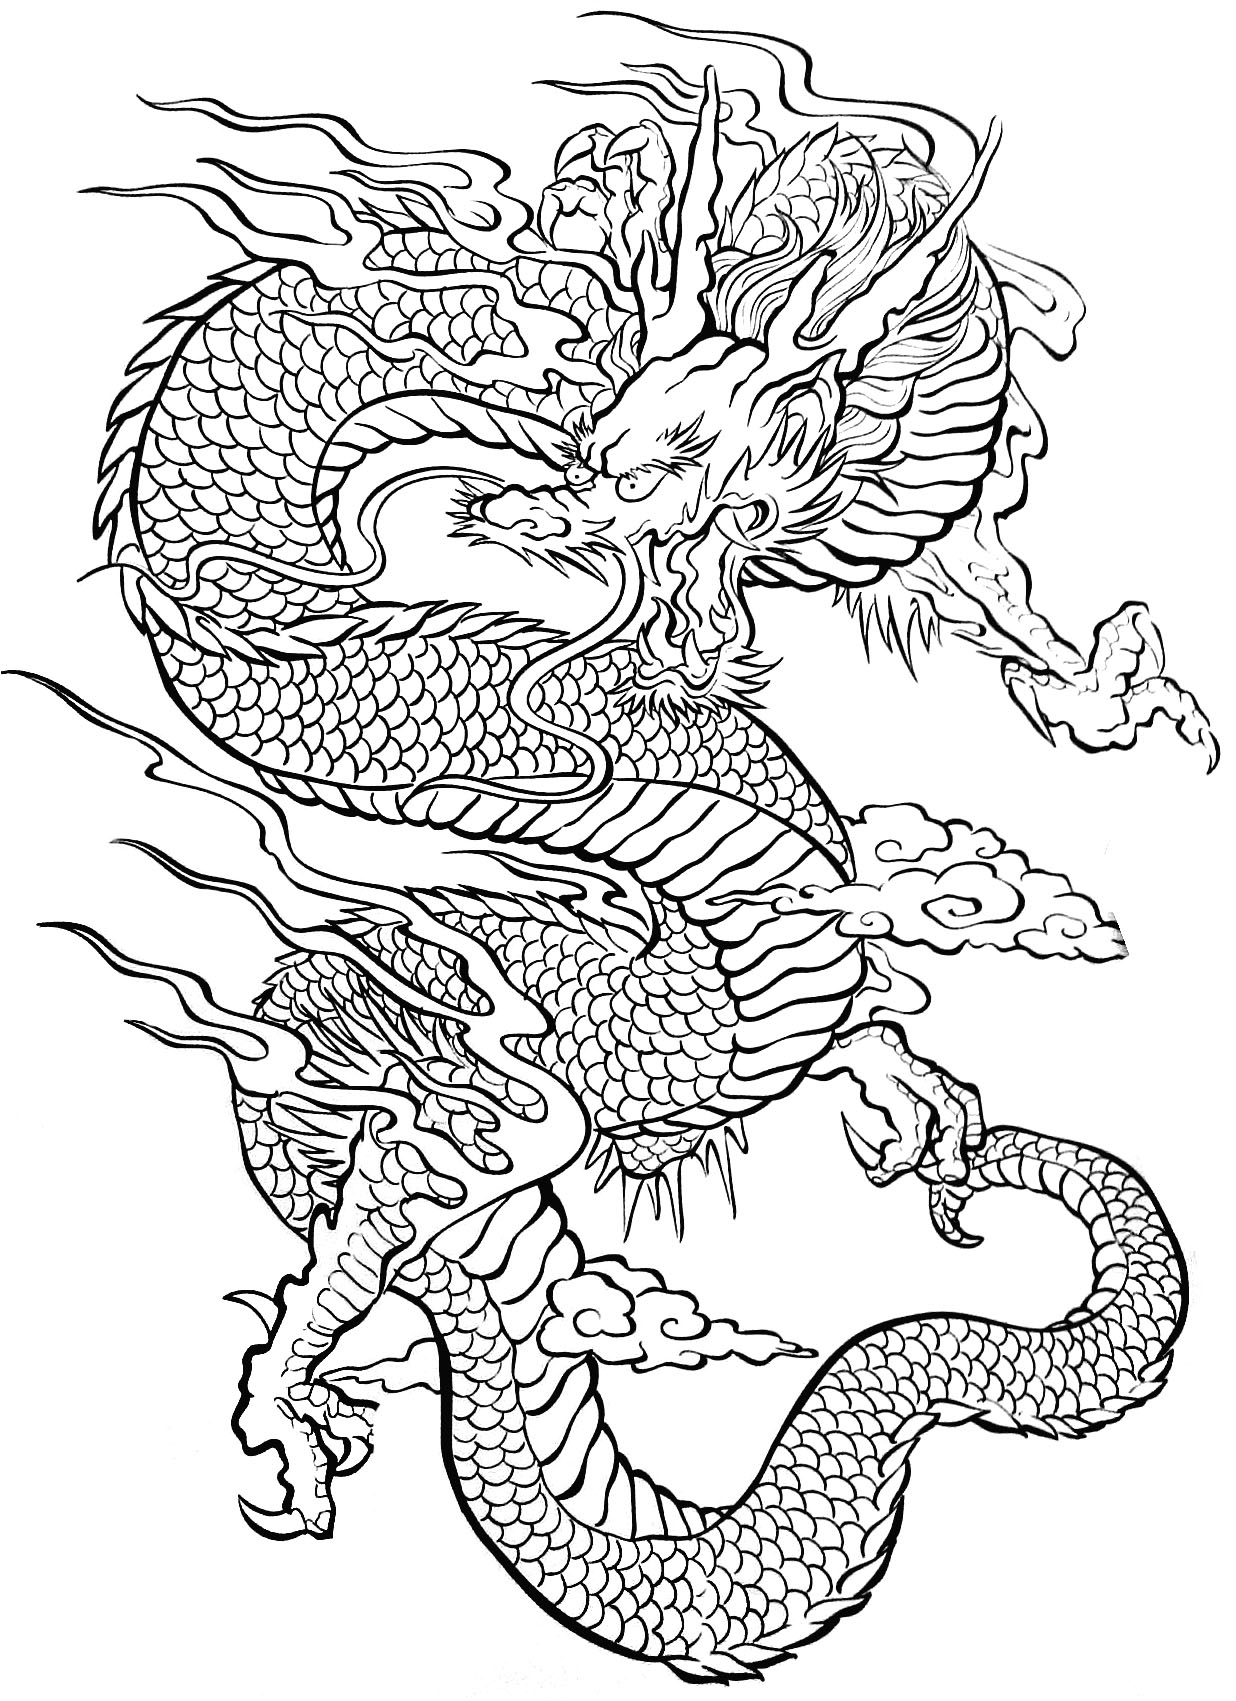 Tattoo dragon tattoos adult coloring pages - Modele dessin dragon ...